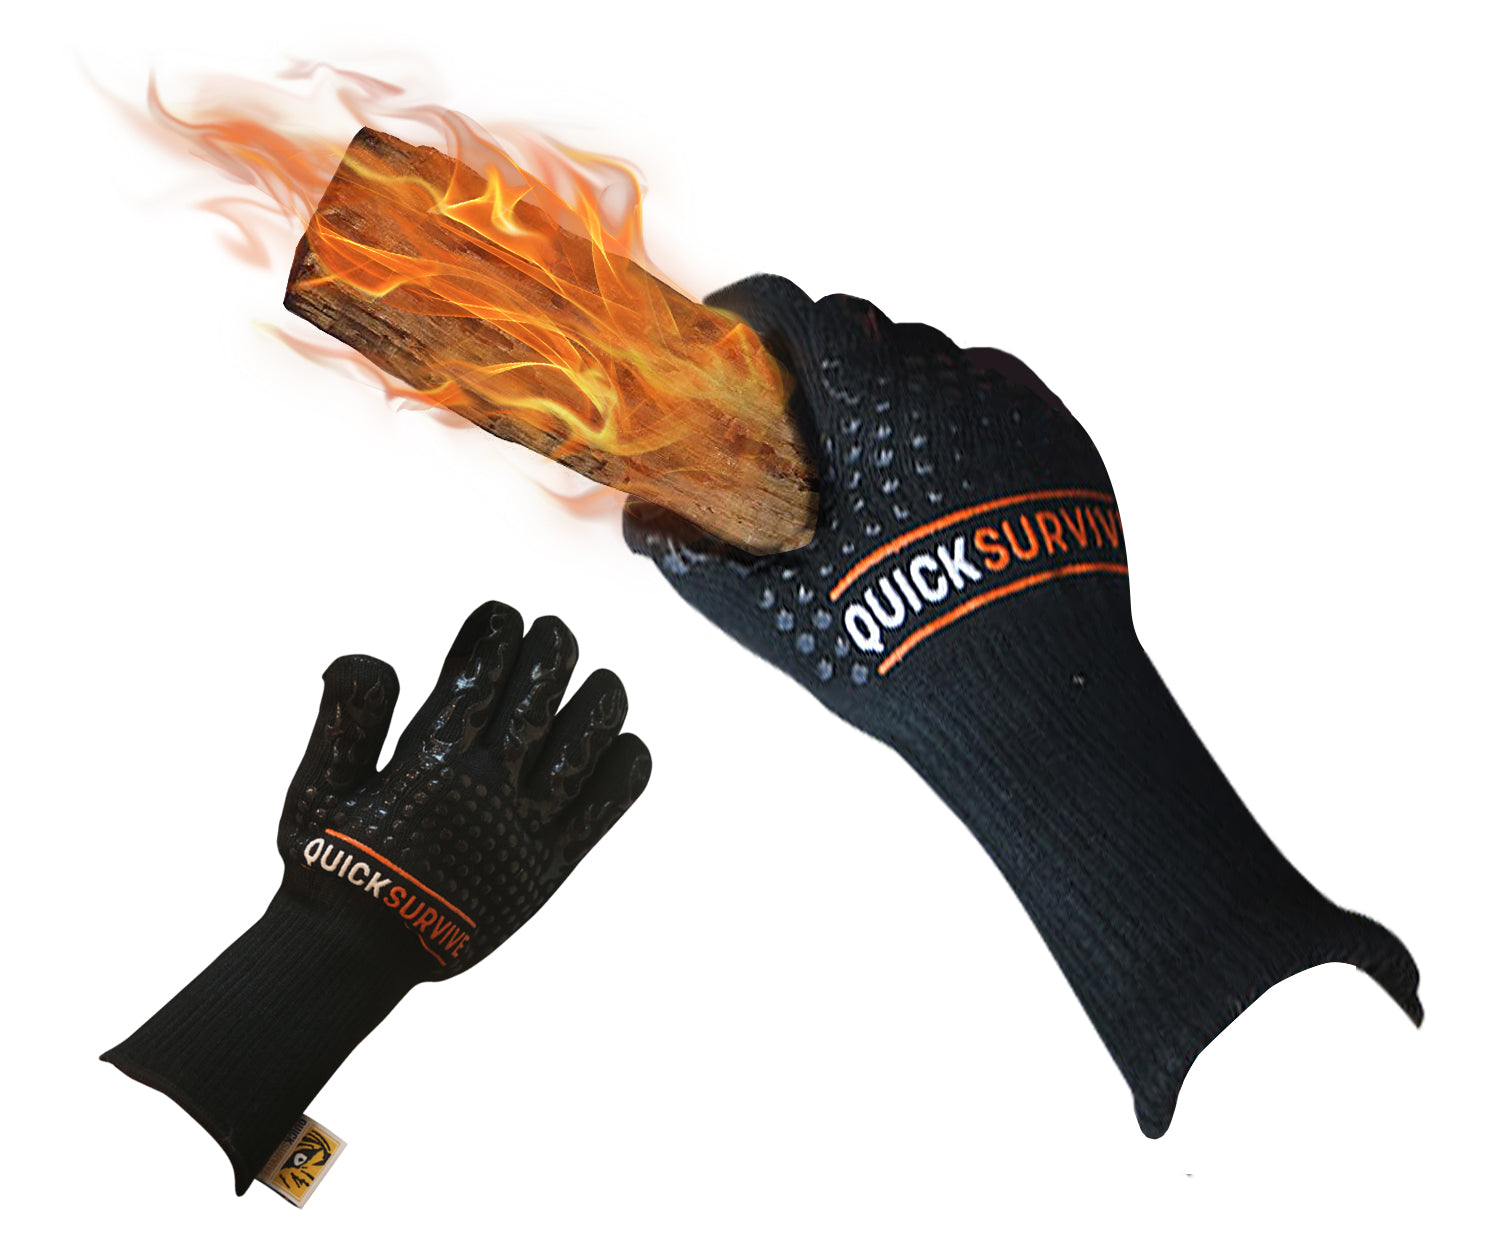 Heat Resistant Fire Safety Glove - QUICKSURVIVE, the highest heat protection grabbing hot fireplace and campfire log